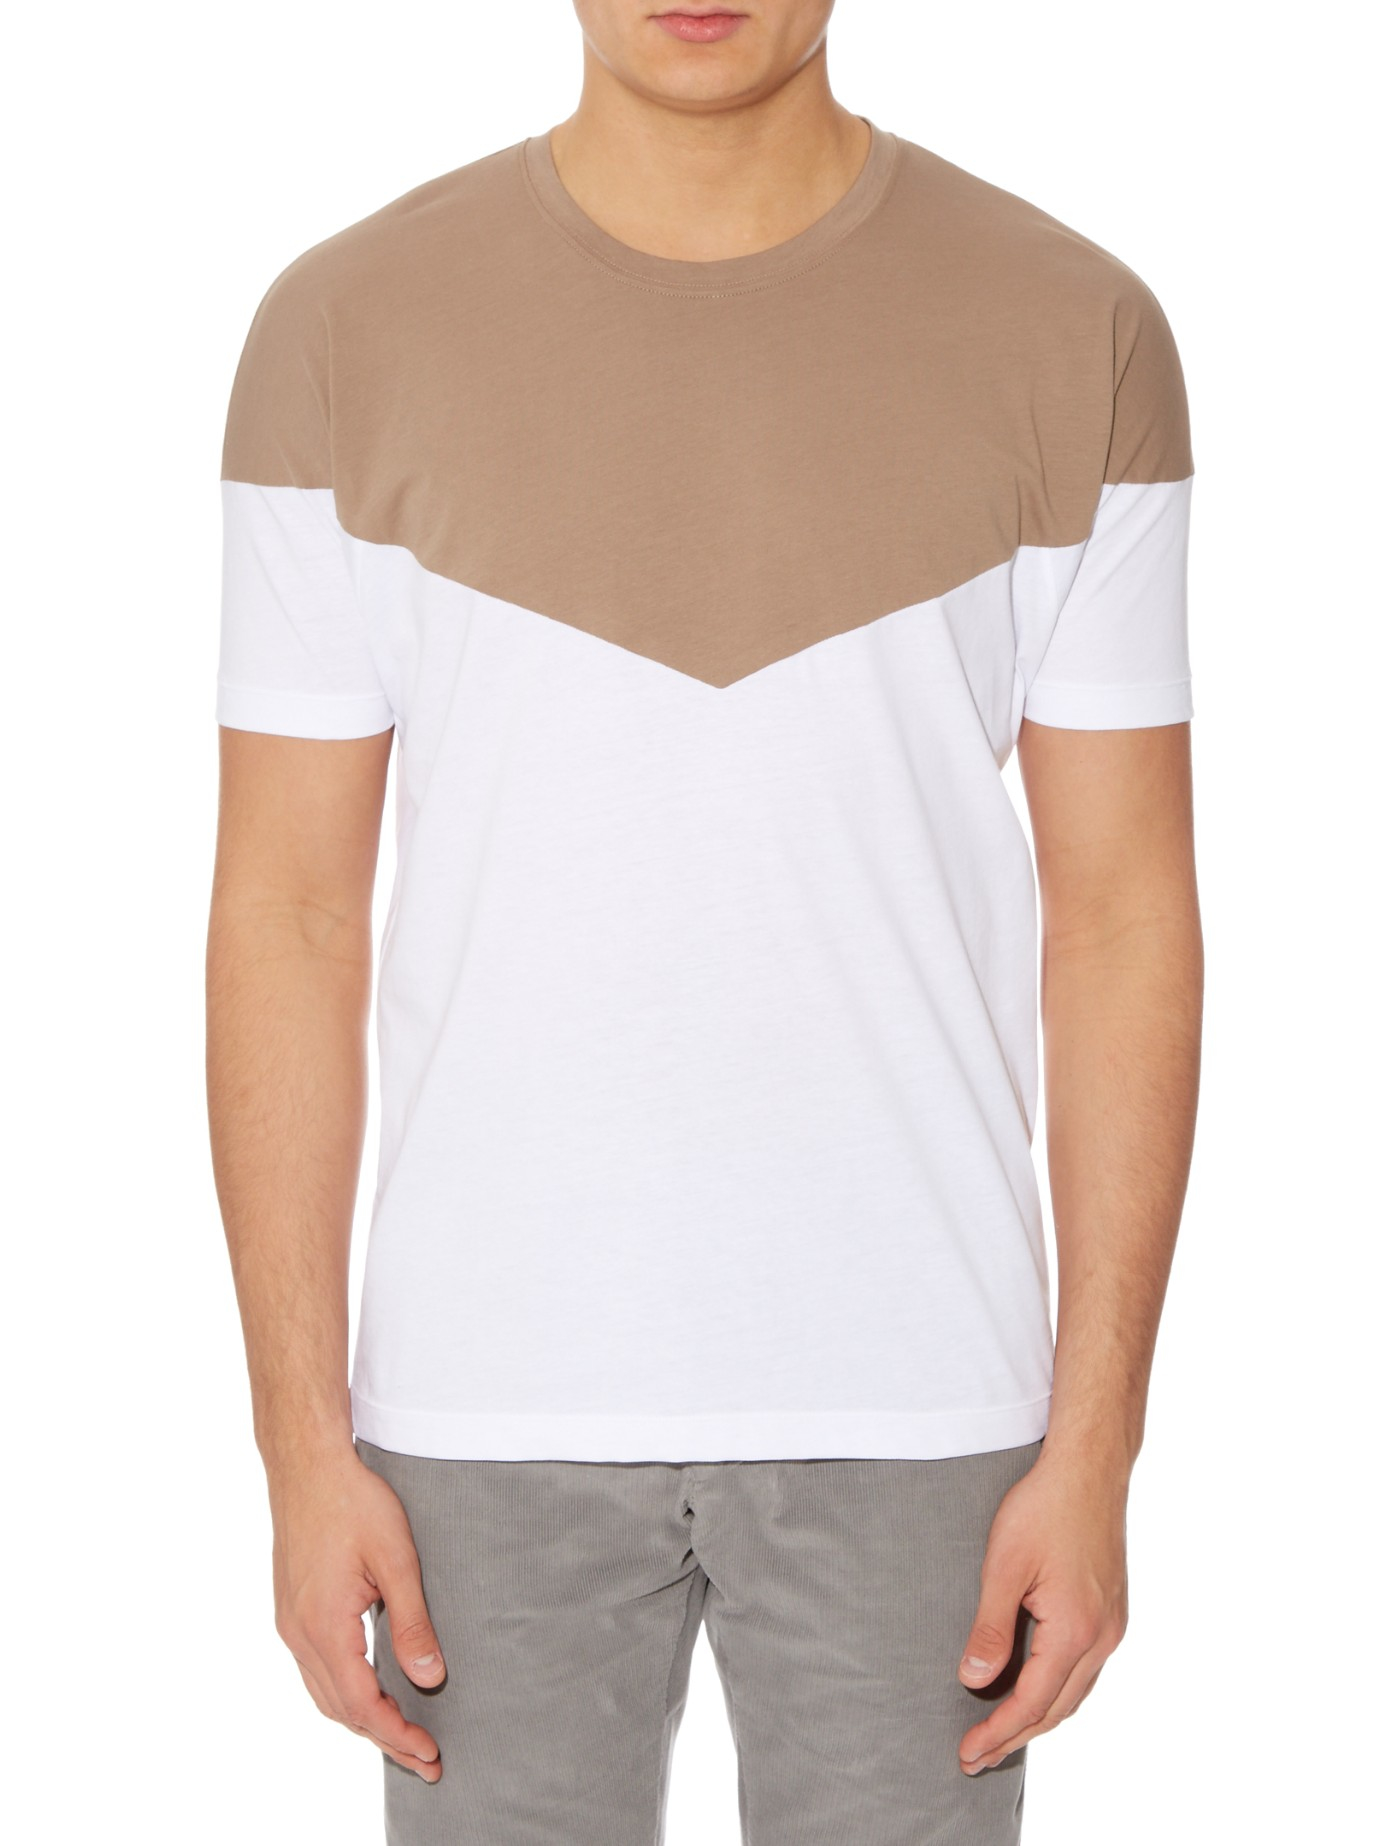 Bottega veneta contrast panel short sleeved t shirt in for Bottega veneta t shirt